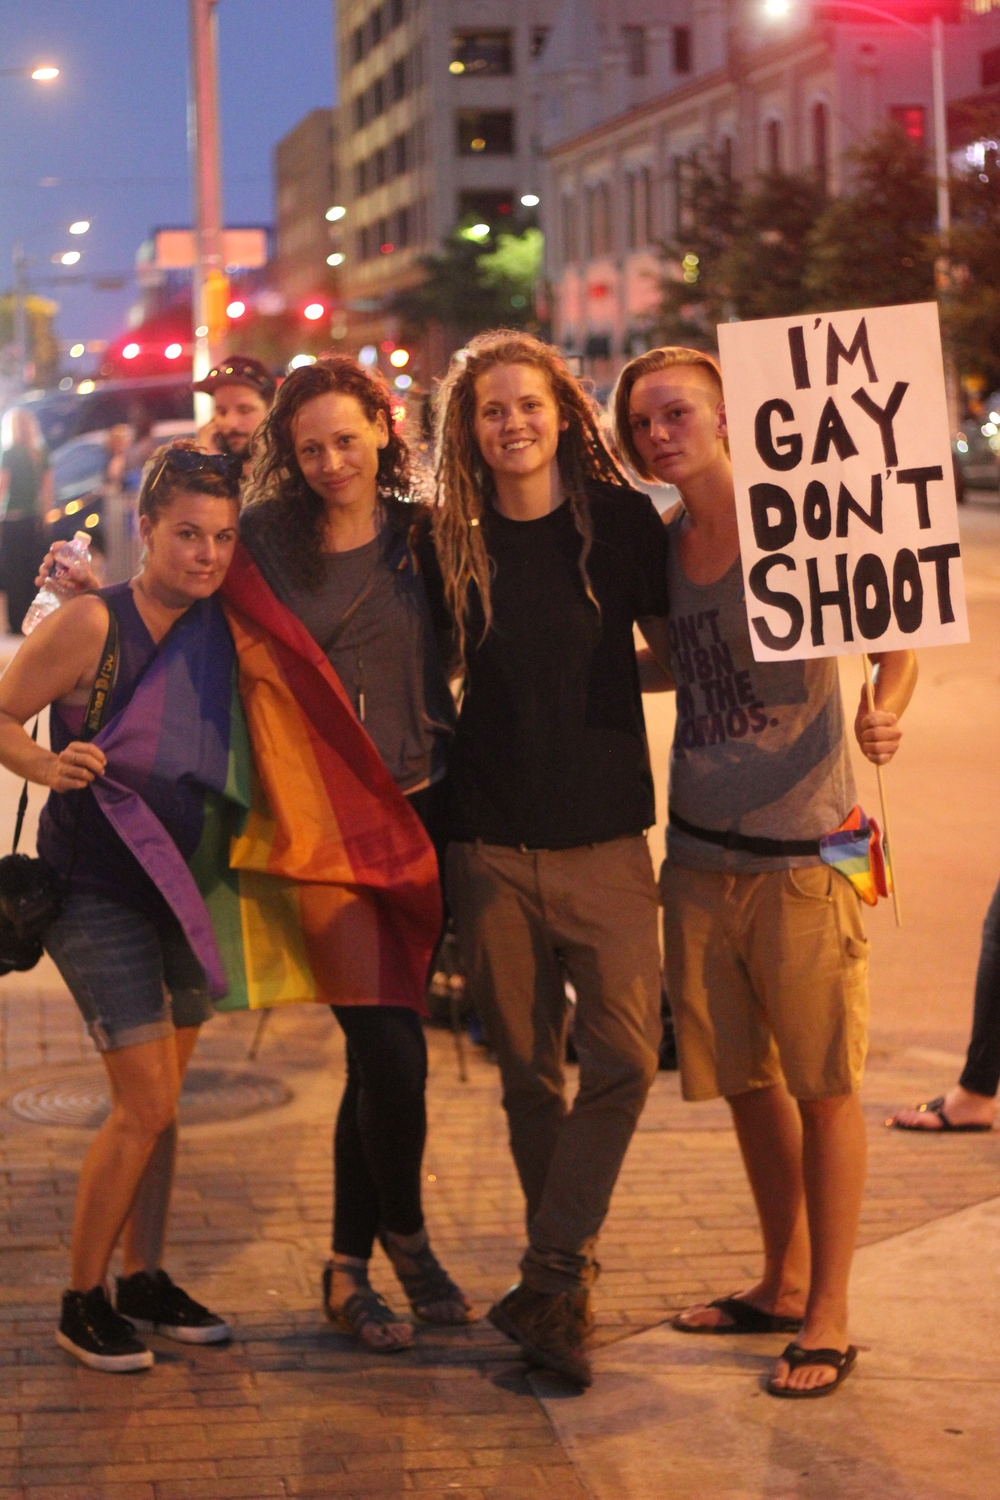 """Lisa Hause, Katie Trundt, Lacey Roop and Caitlyn Krull had a poster party before the vigil. Caitlyn's poster reads, """"I'm gay don't shoot."""""""